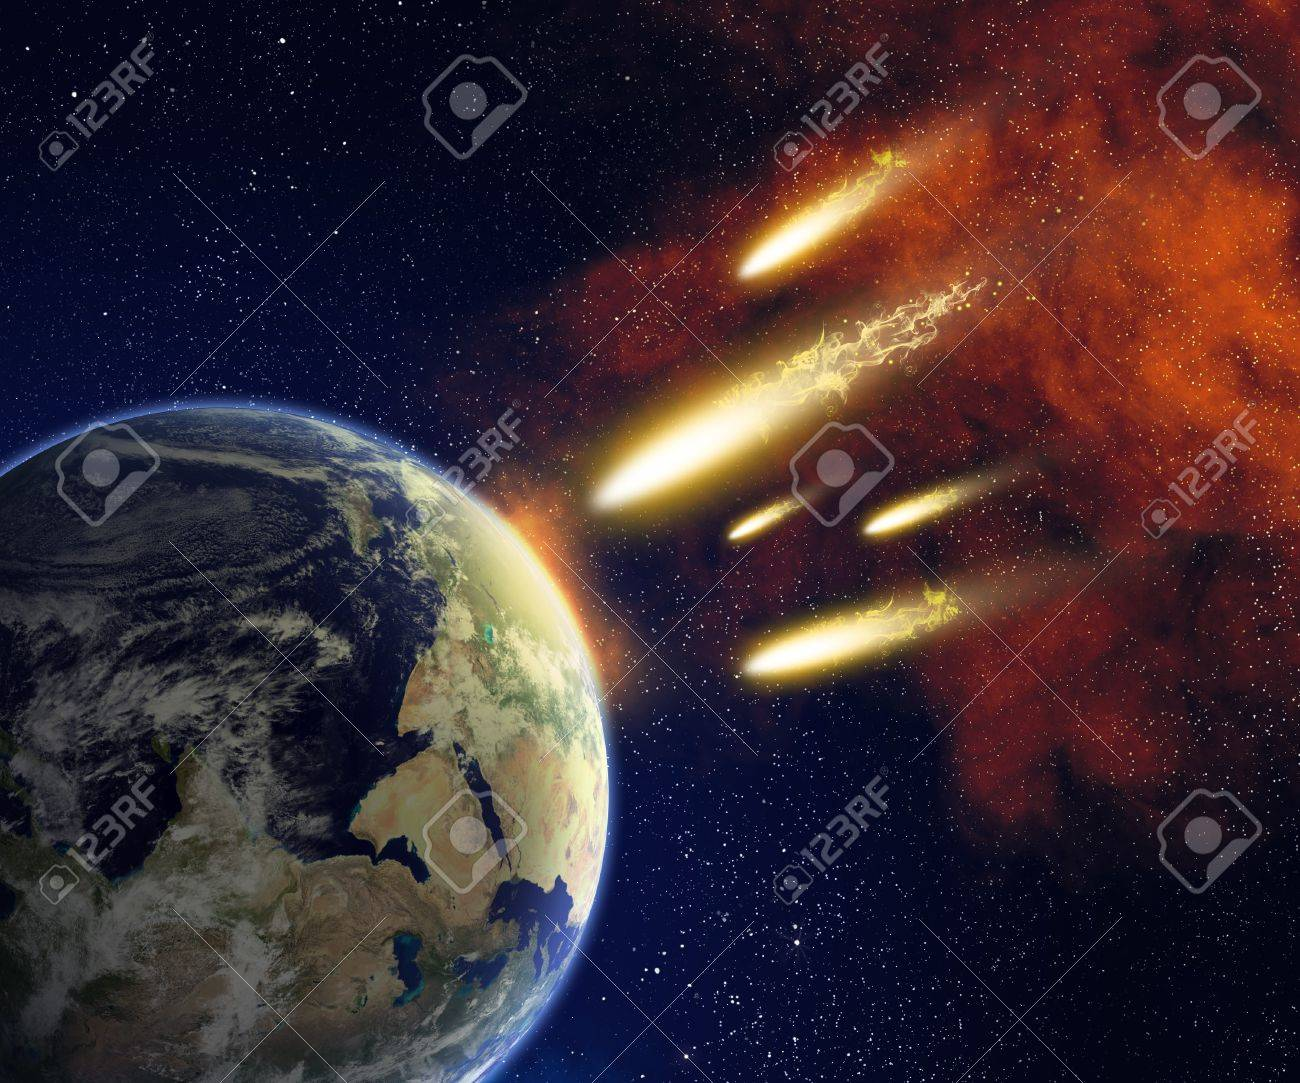 Earth and flying asteroids in space  Asteroid impact  catastrophe  elements furnished by NASA Stock Photo - 16452426